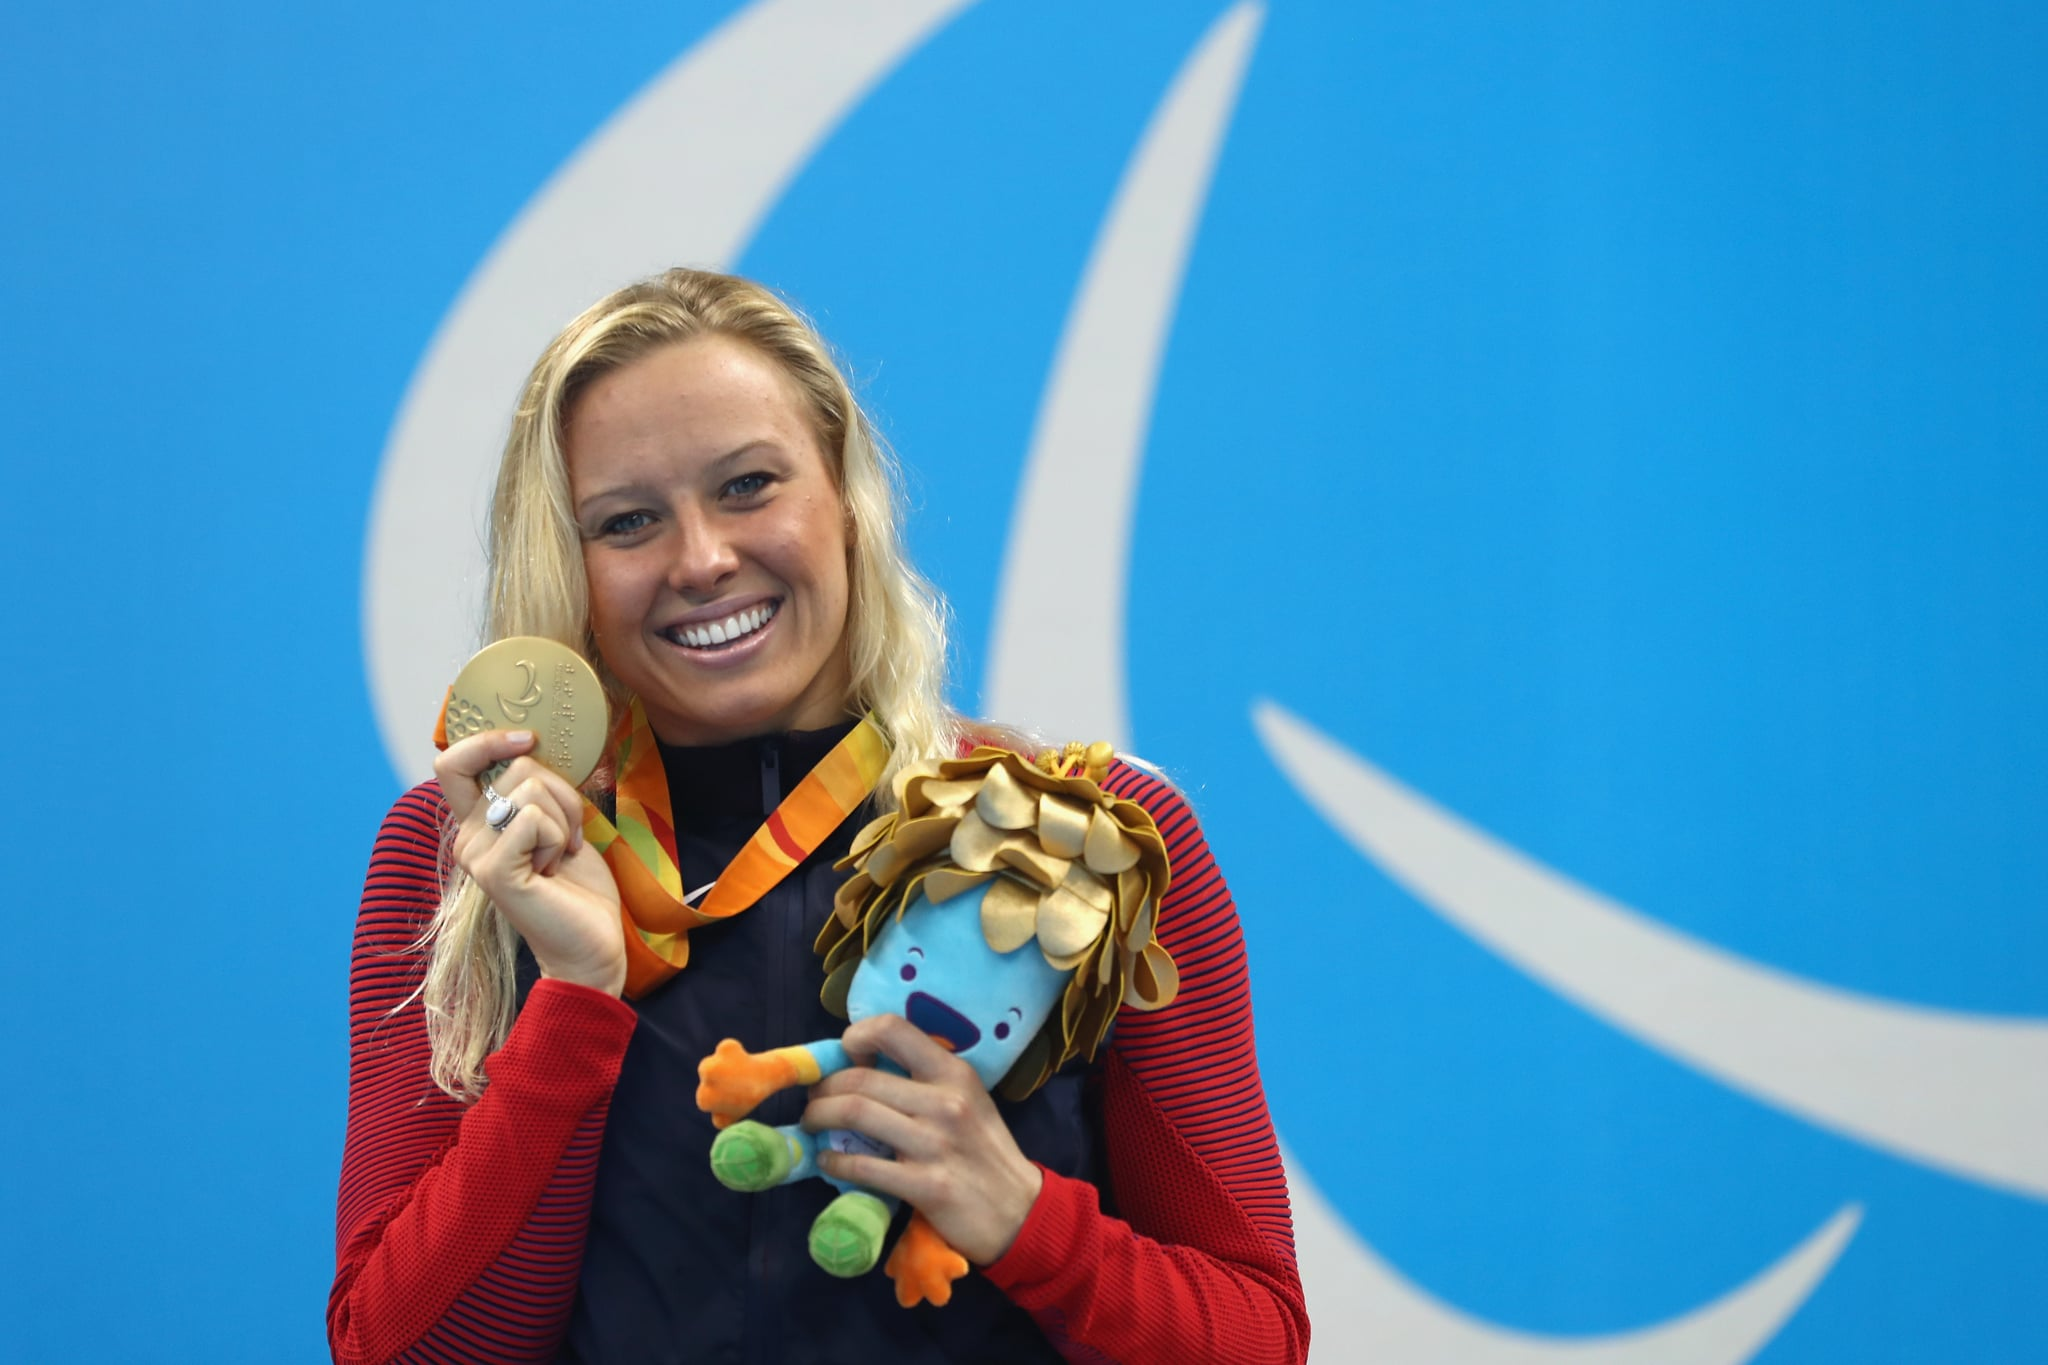 RIO DE JANEIRO, BRAZIL - SEPTEMBER 17:  Gold medalist Jessica Long of the United States celebrates on the podium at the medal ceremony for Women's 200m Individual Medley - SM8 on day 10 of the Rio 2016 Paralympic Games at the Olympic Aquatics Stadium on September 17, 2016 in Rio de Janeiro, Brazil.  (Photo by Buda Mendes/Getty Images)